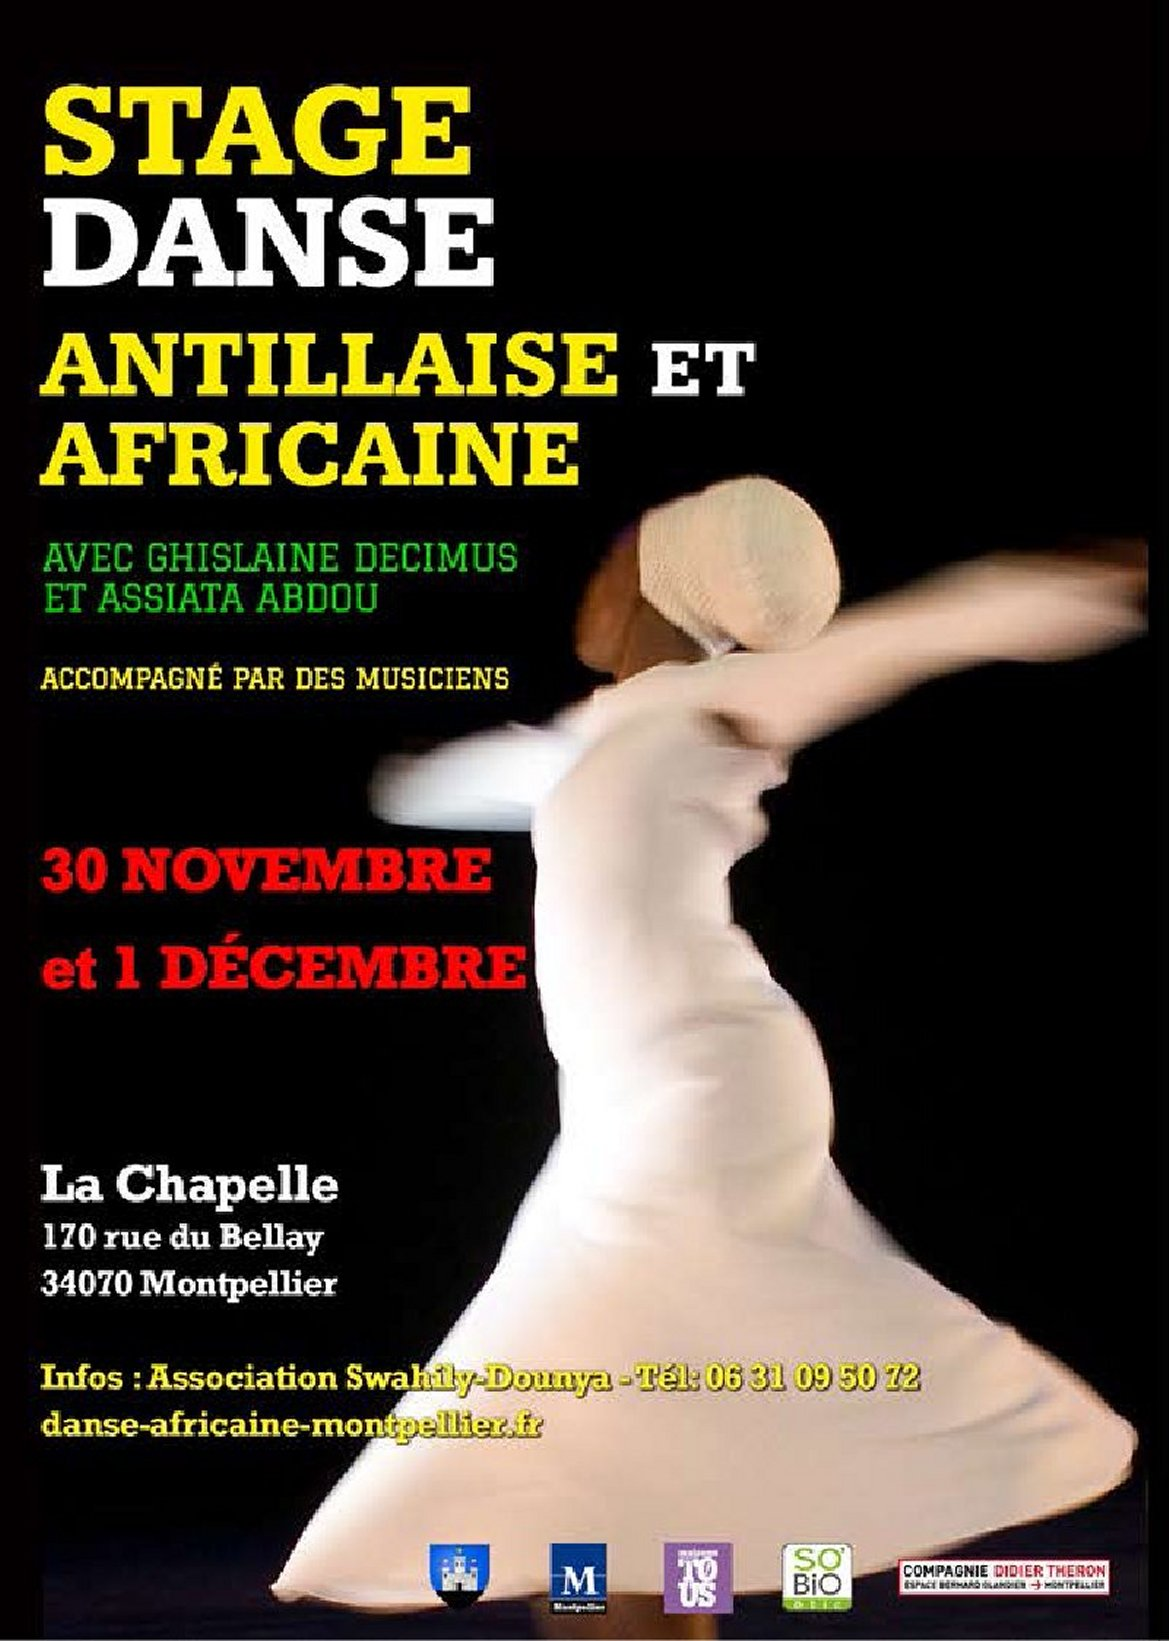 stage danse antillaise africaine 2013 1